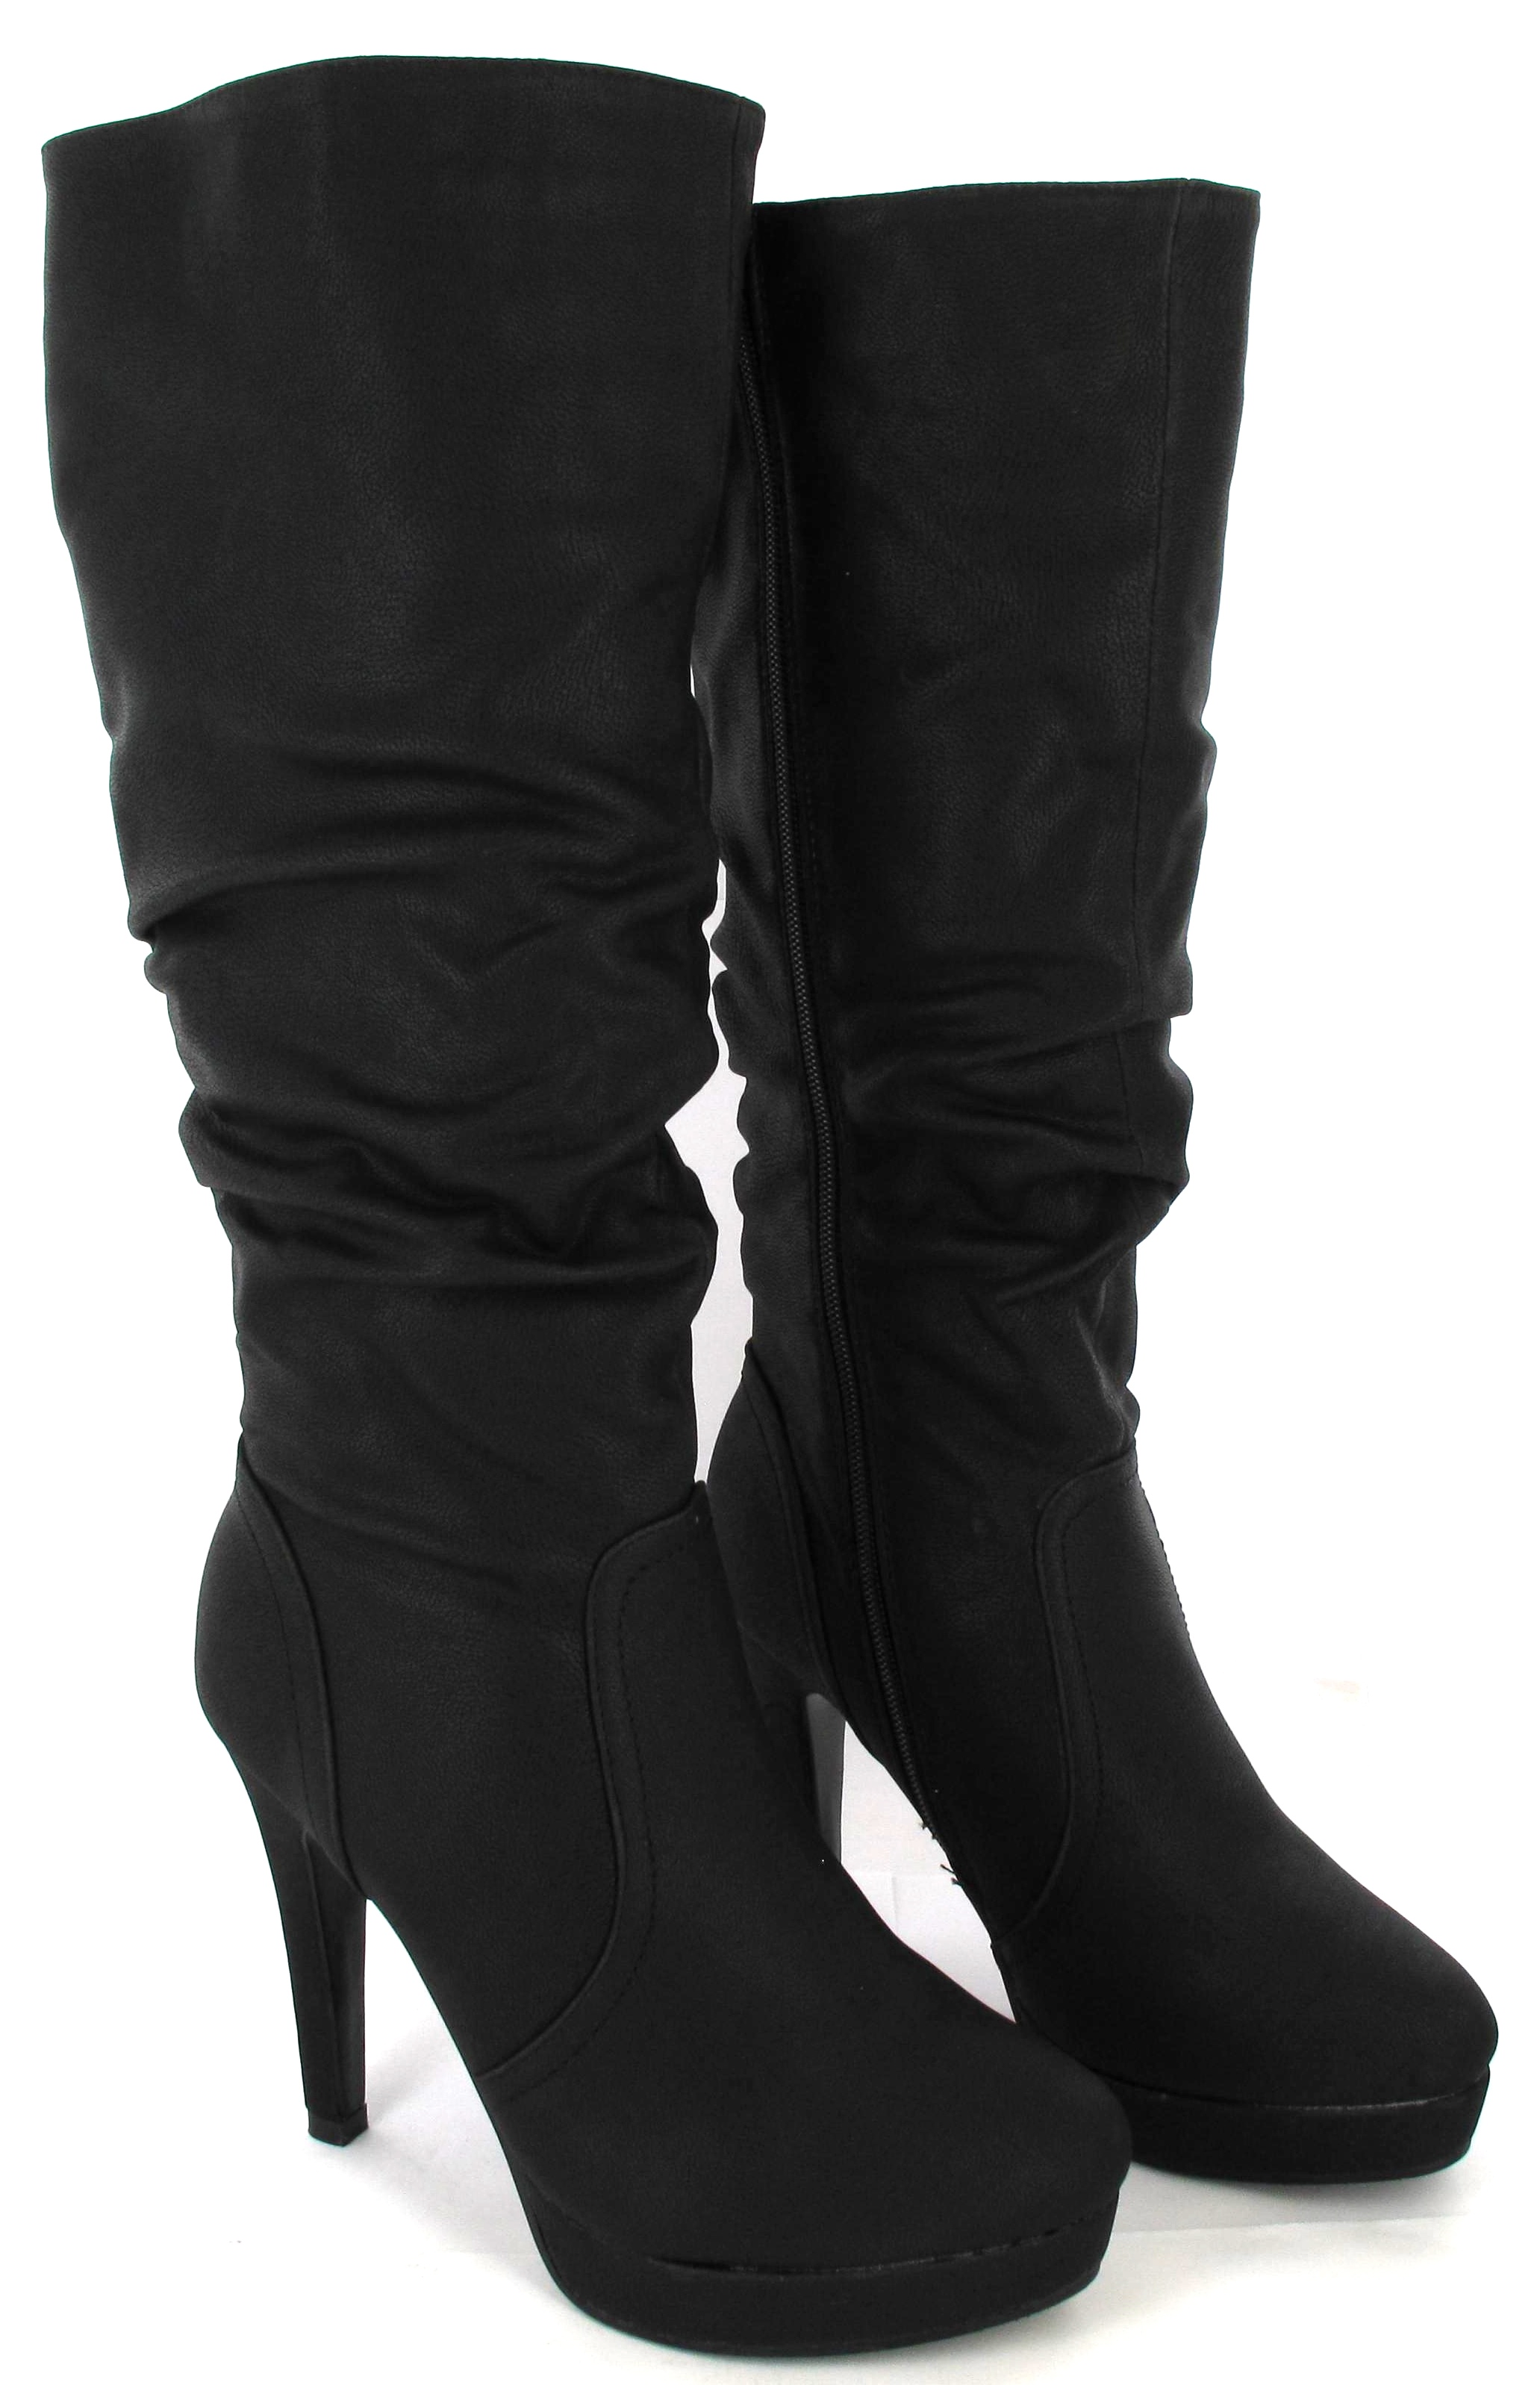 WOMANS MID HIGH HEEL STILETTO KNEE BOOTS LADIES FASHION MID CALF ...